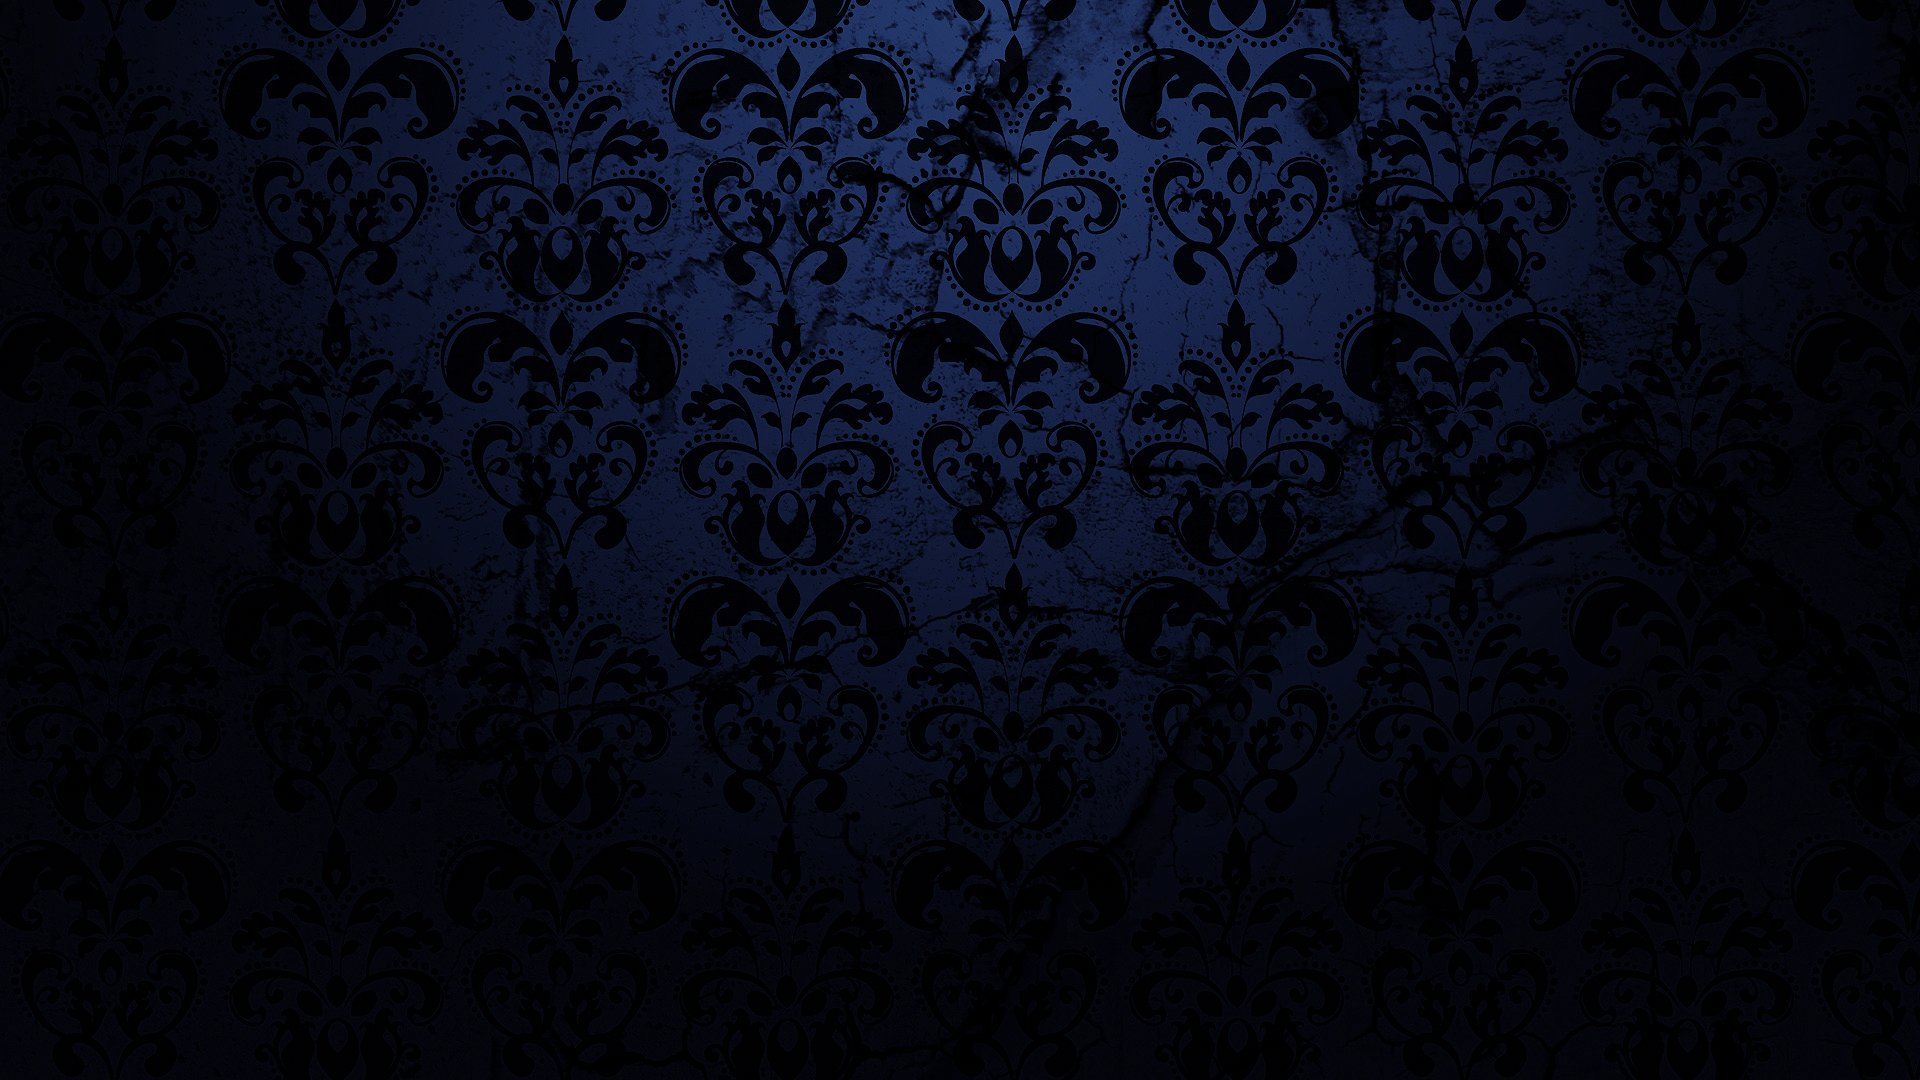 Minimalistic patterns damask wallpaper 1920x1080 - Barock wallpaper ...